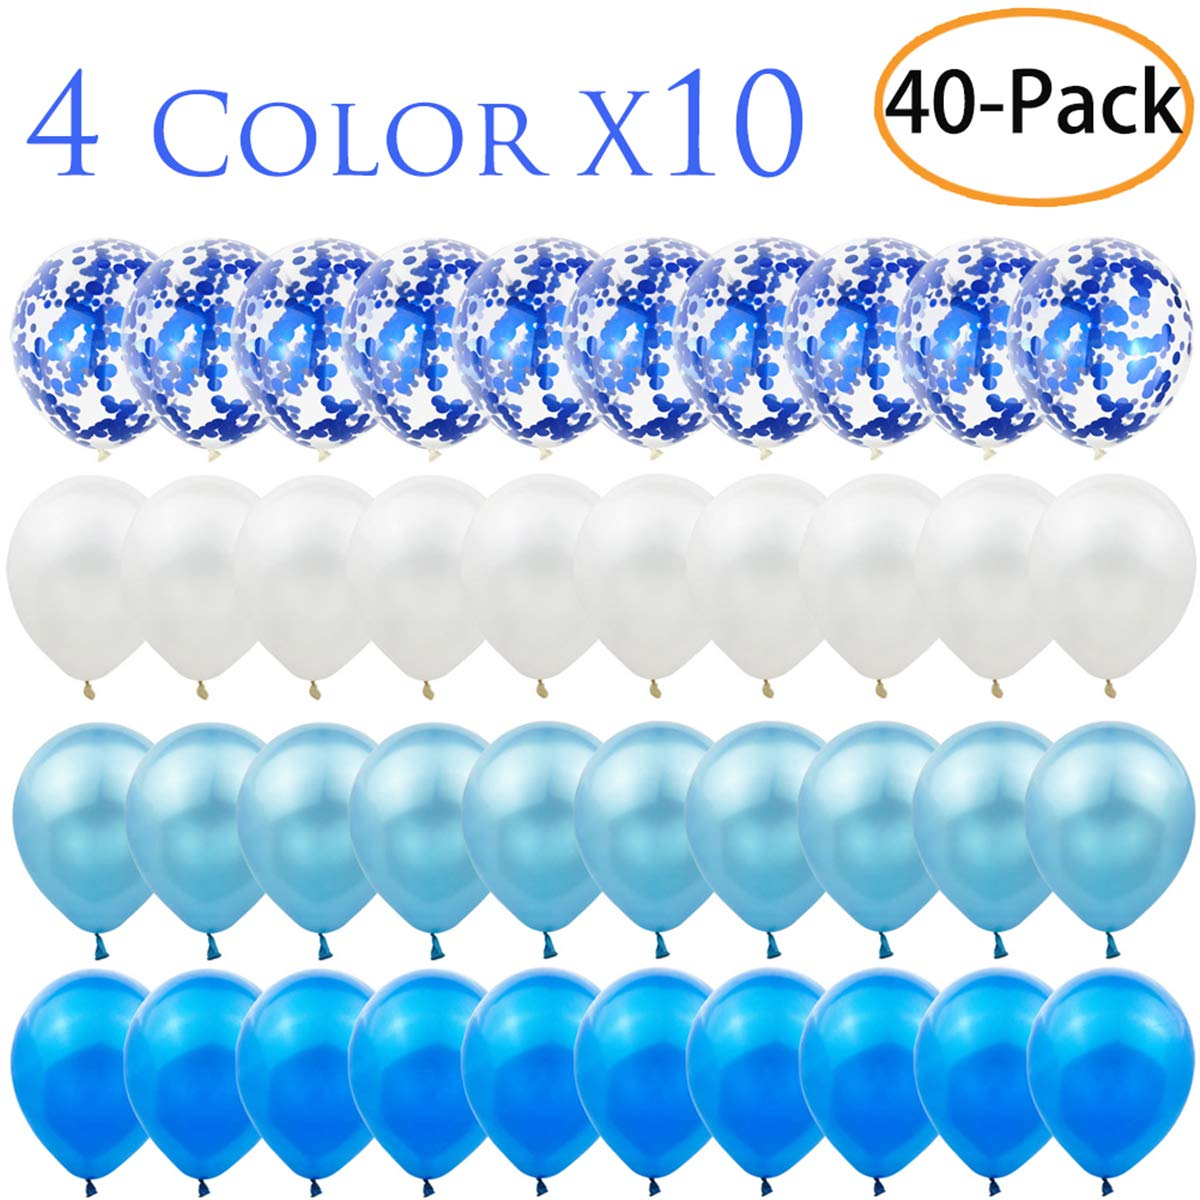 Birthday Zkptops 40 Pack 12 inch Blue Confetti Balloon Set Include 10 Pcs Confetti Balloons and 30 Pcs Latex Balloons for Wedding Bridal Shower Party Decorations Favors Baby Shower Blue and White